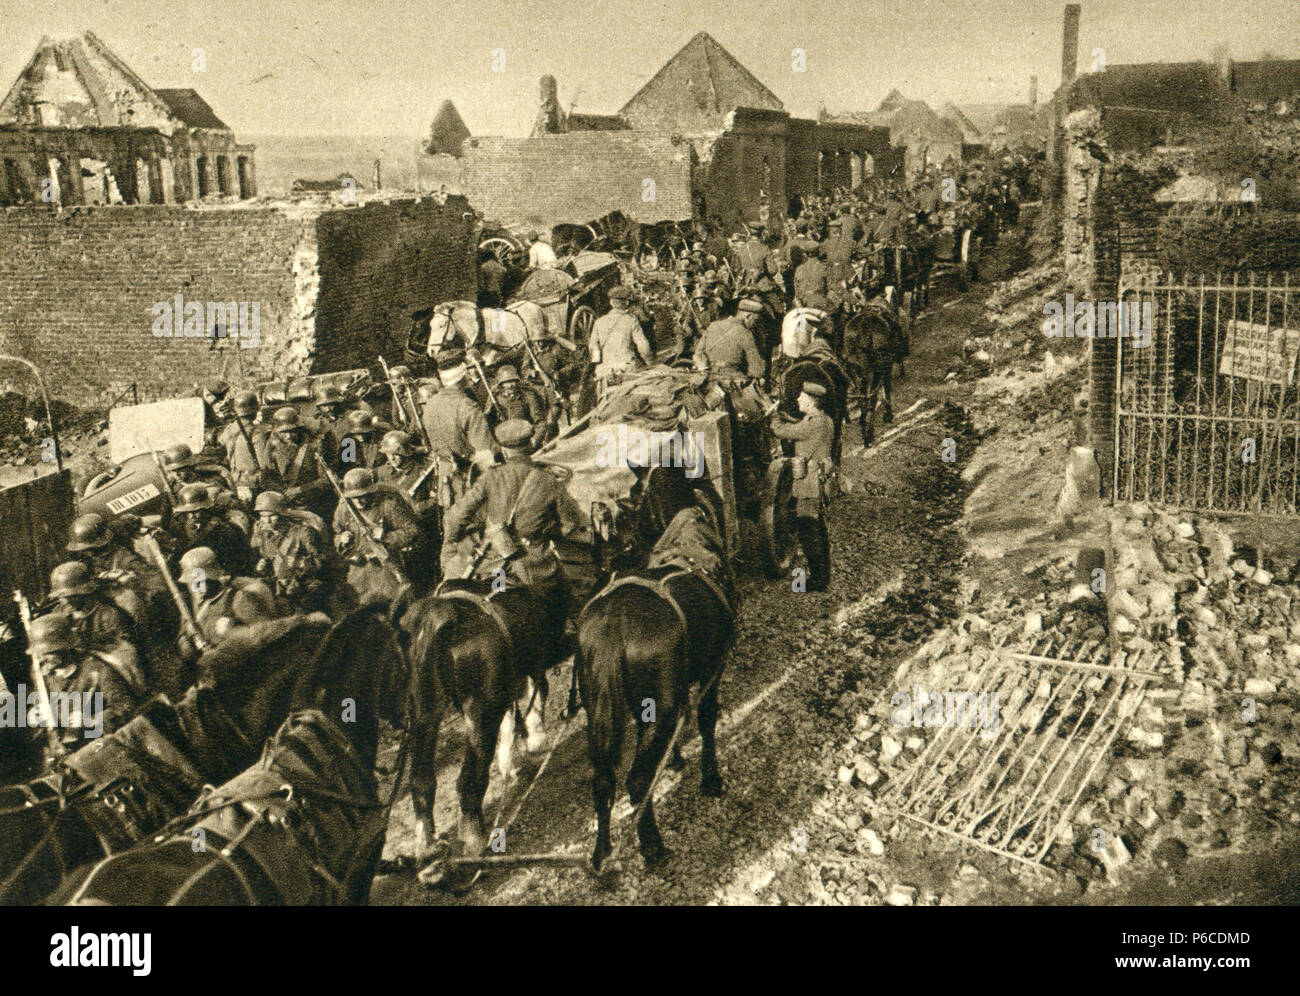 world war i, cavalry, vormarsch, ww1, wwi, world war one - Stock Image